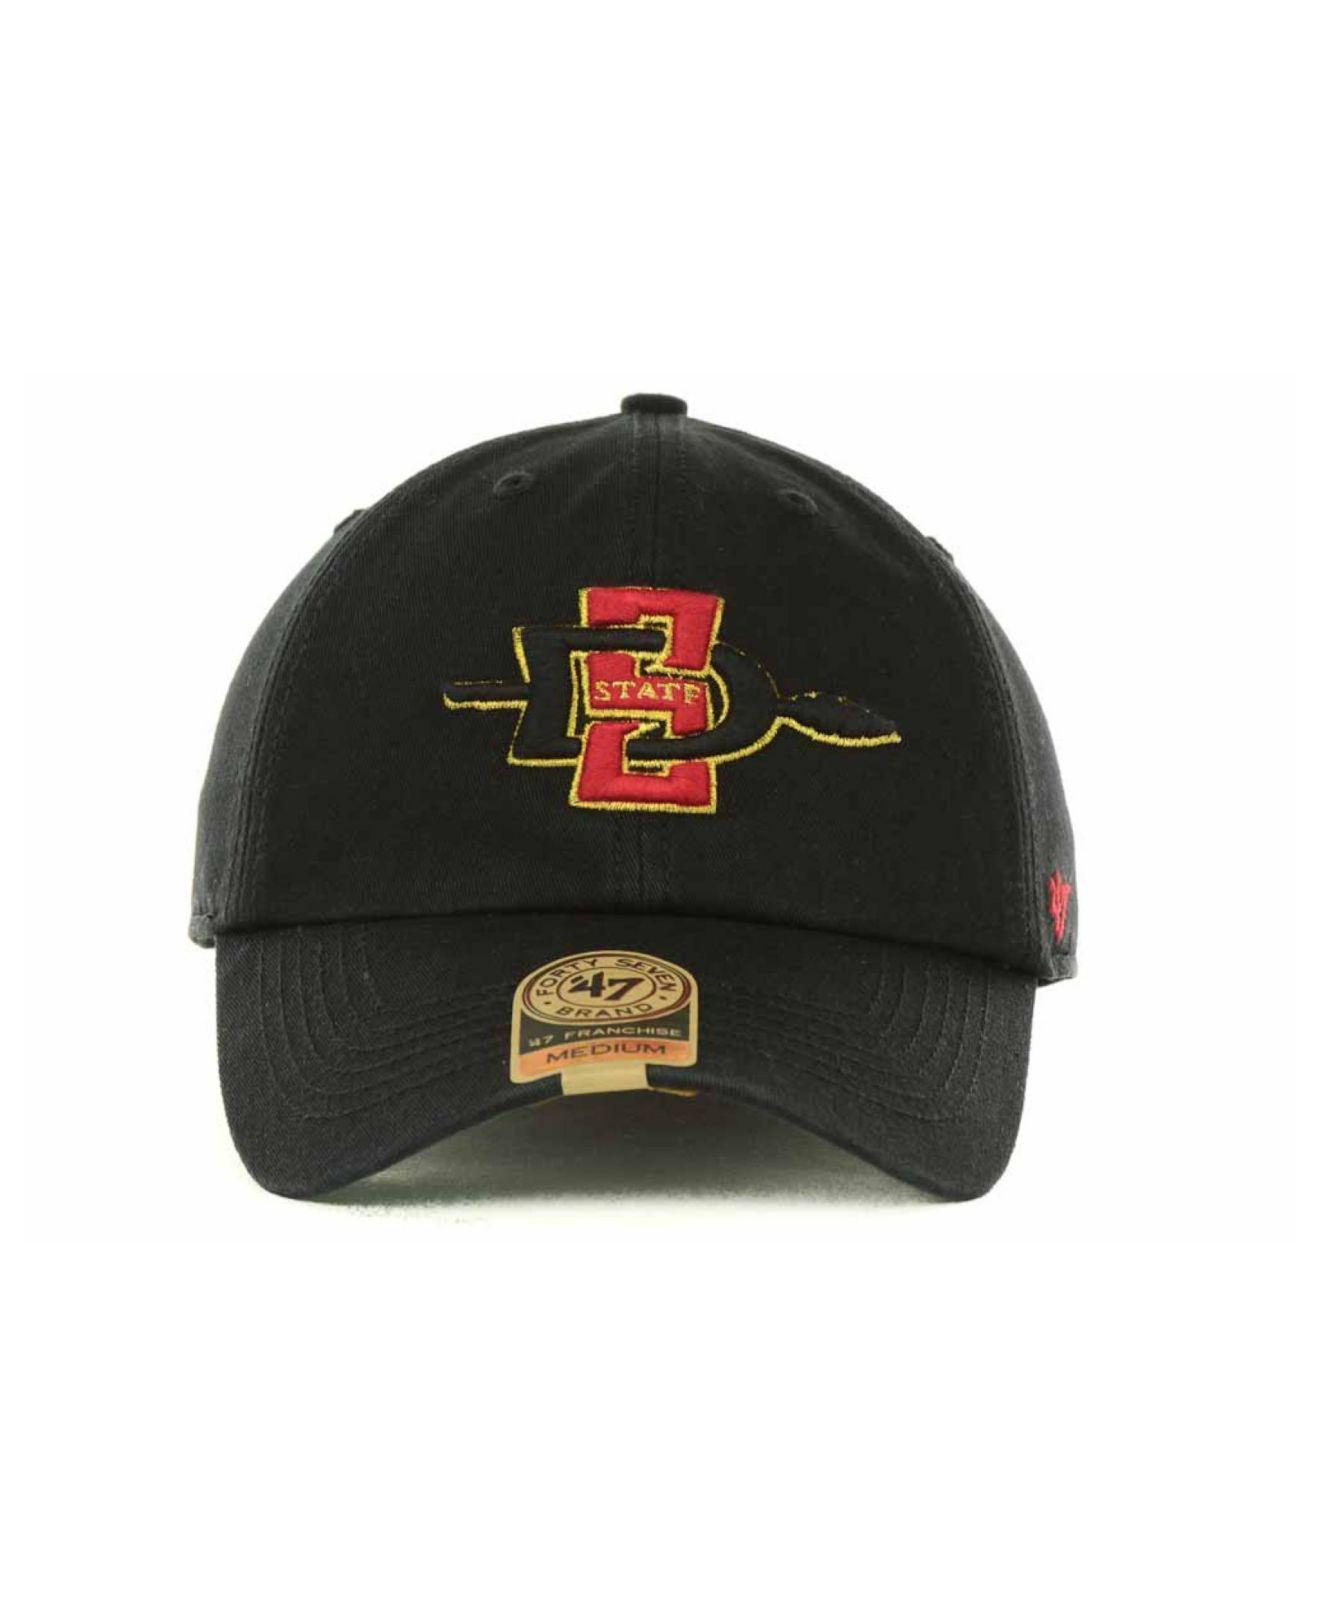 official photos df780 9f083 ... cheapest san diego state aztecs franchise cap for men lyst. view  fullscreen 3ec2a aad59